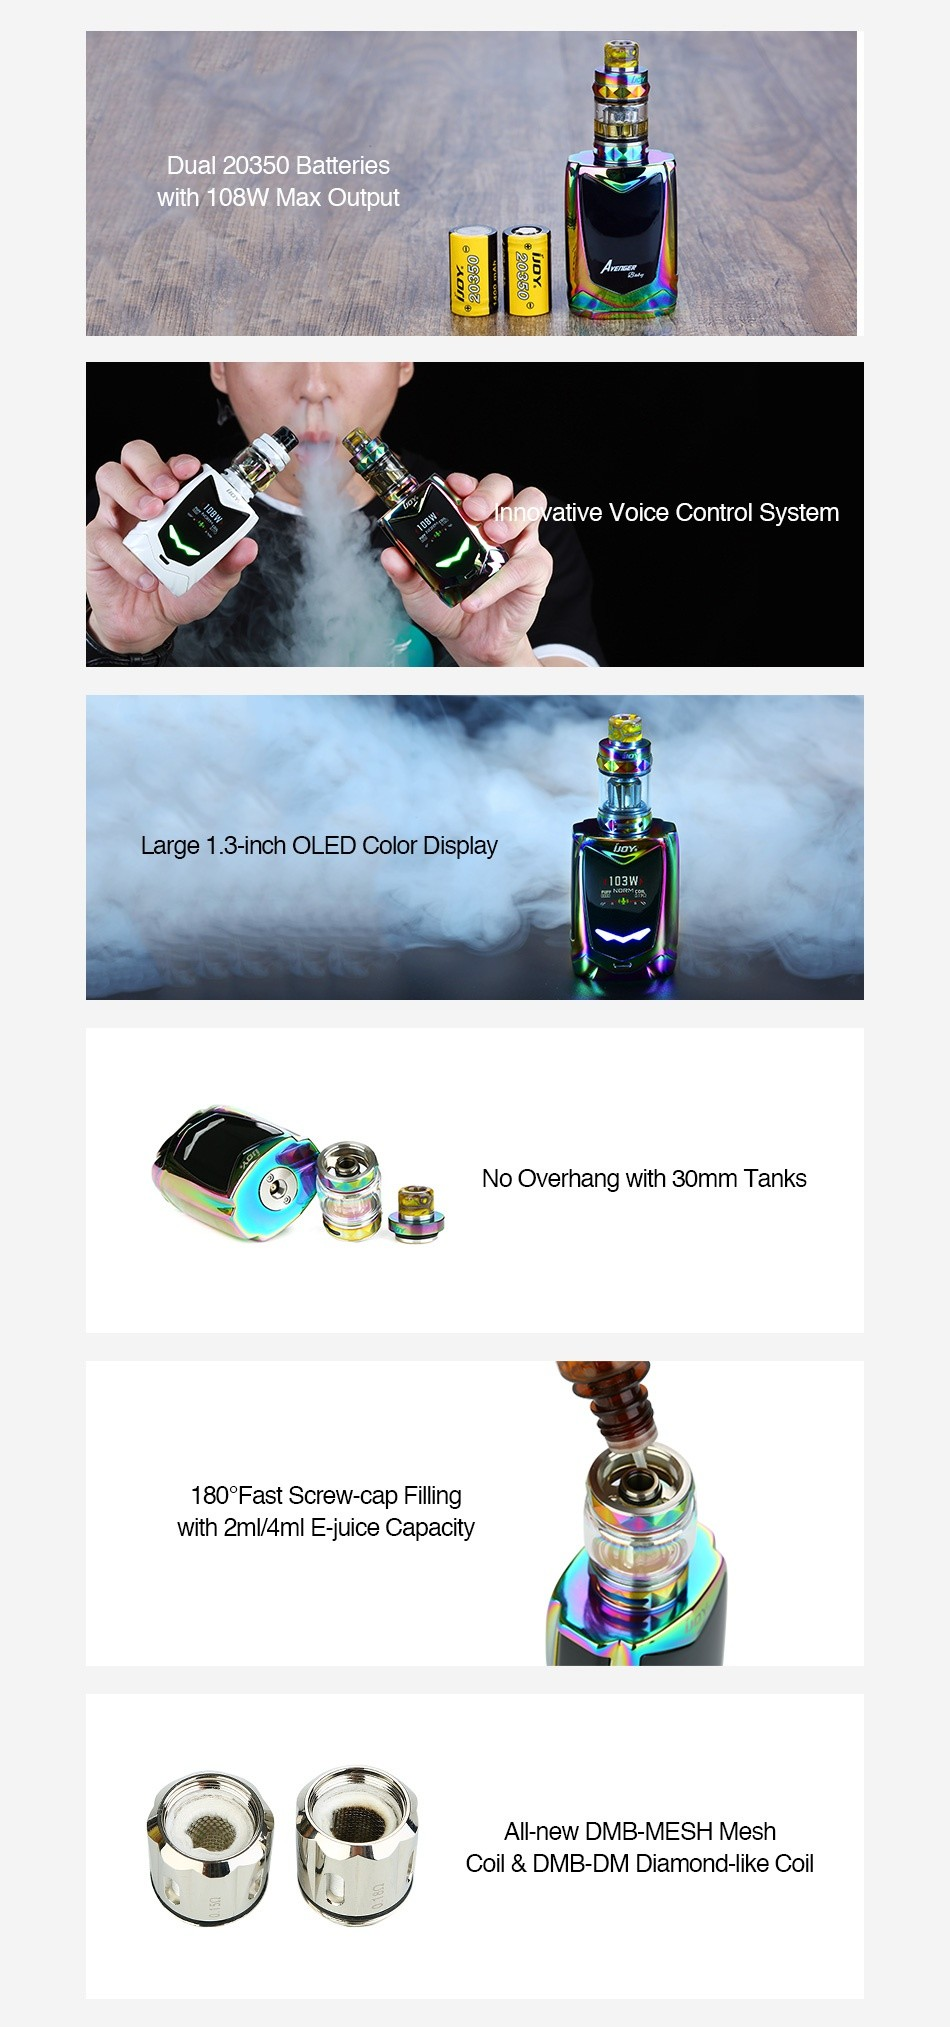 IJOY Avenger Baby 108W Voice Control TC Kit 2800mAh Dual 20350 Batteries with  108W Max Output nnovative Voice Control System Large 1 3 inch OLED Color Display No Overhang with 30mm Tanks 180  Fast Screw cap Filling with 2ml 4ml E juice Capacity All new DMB MESH Mesh coil dmb dm Diamond like coil